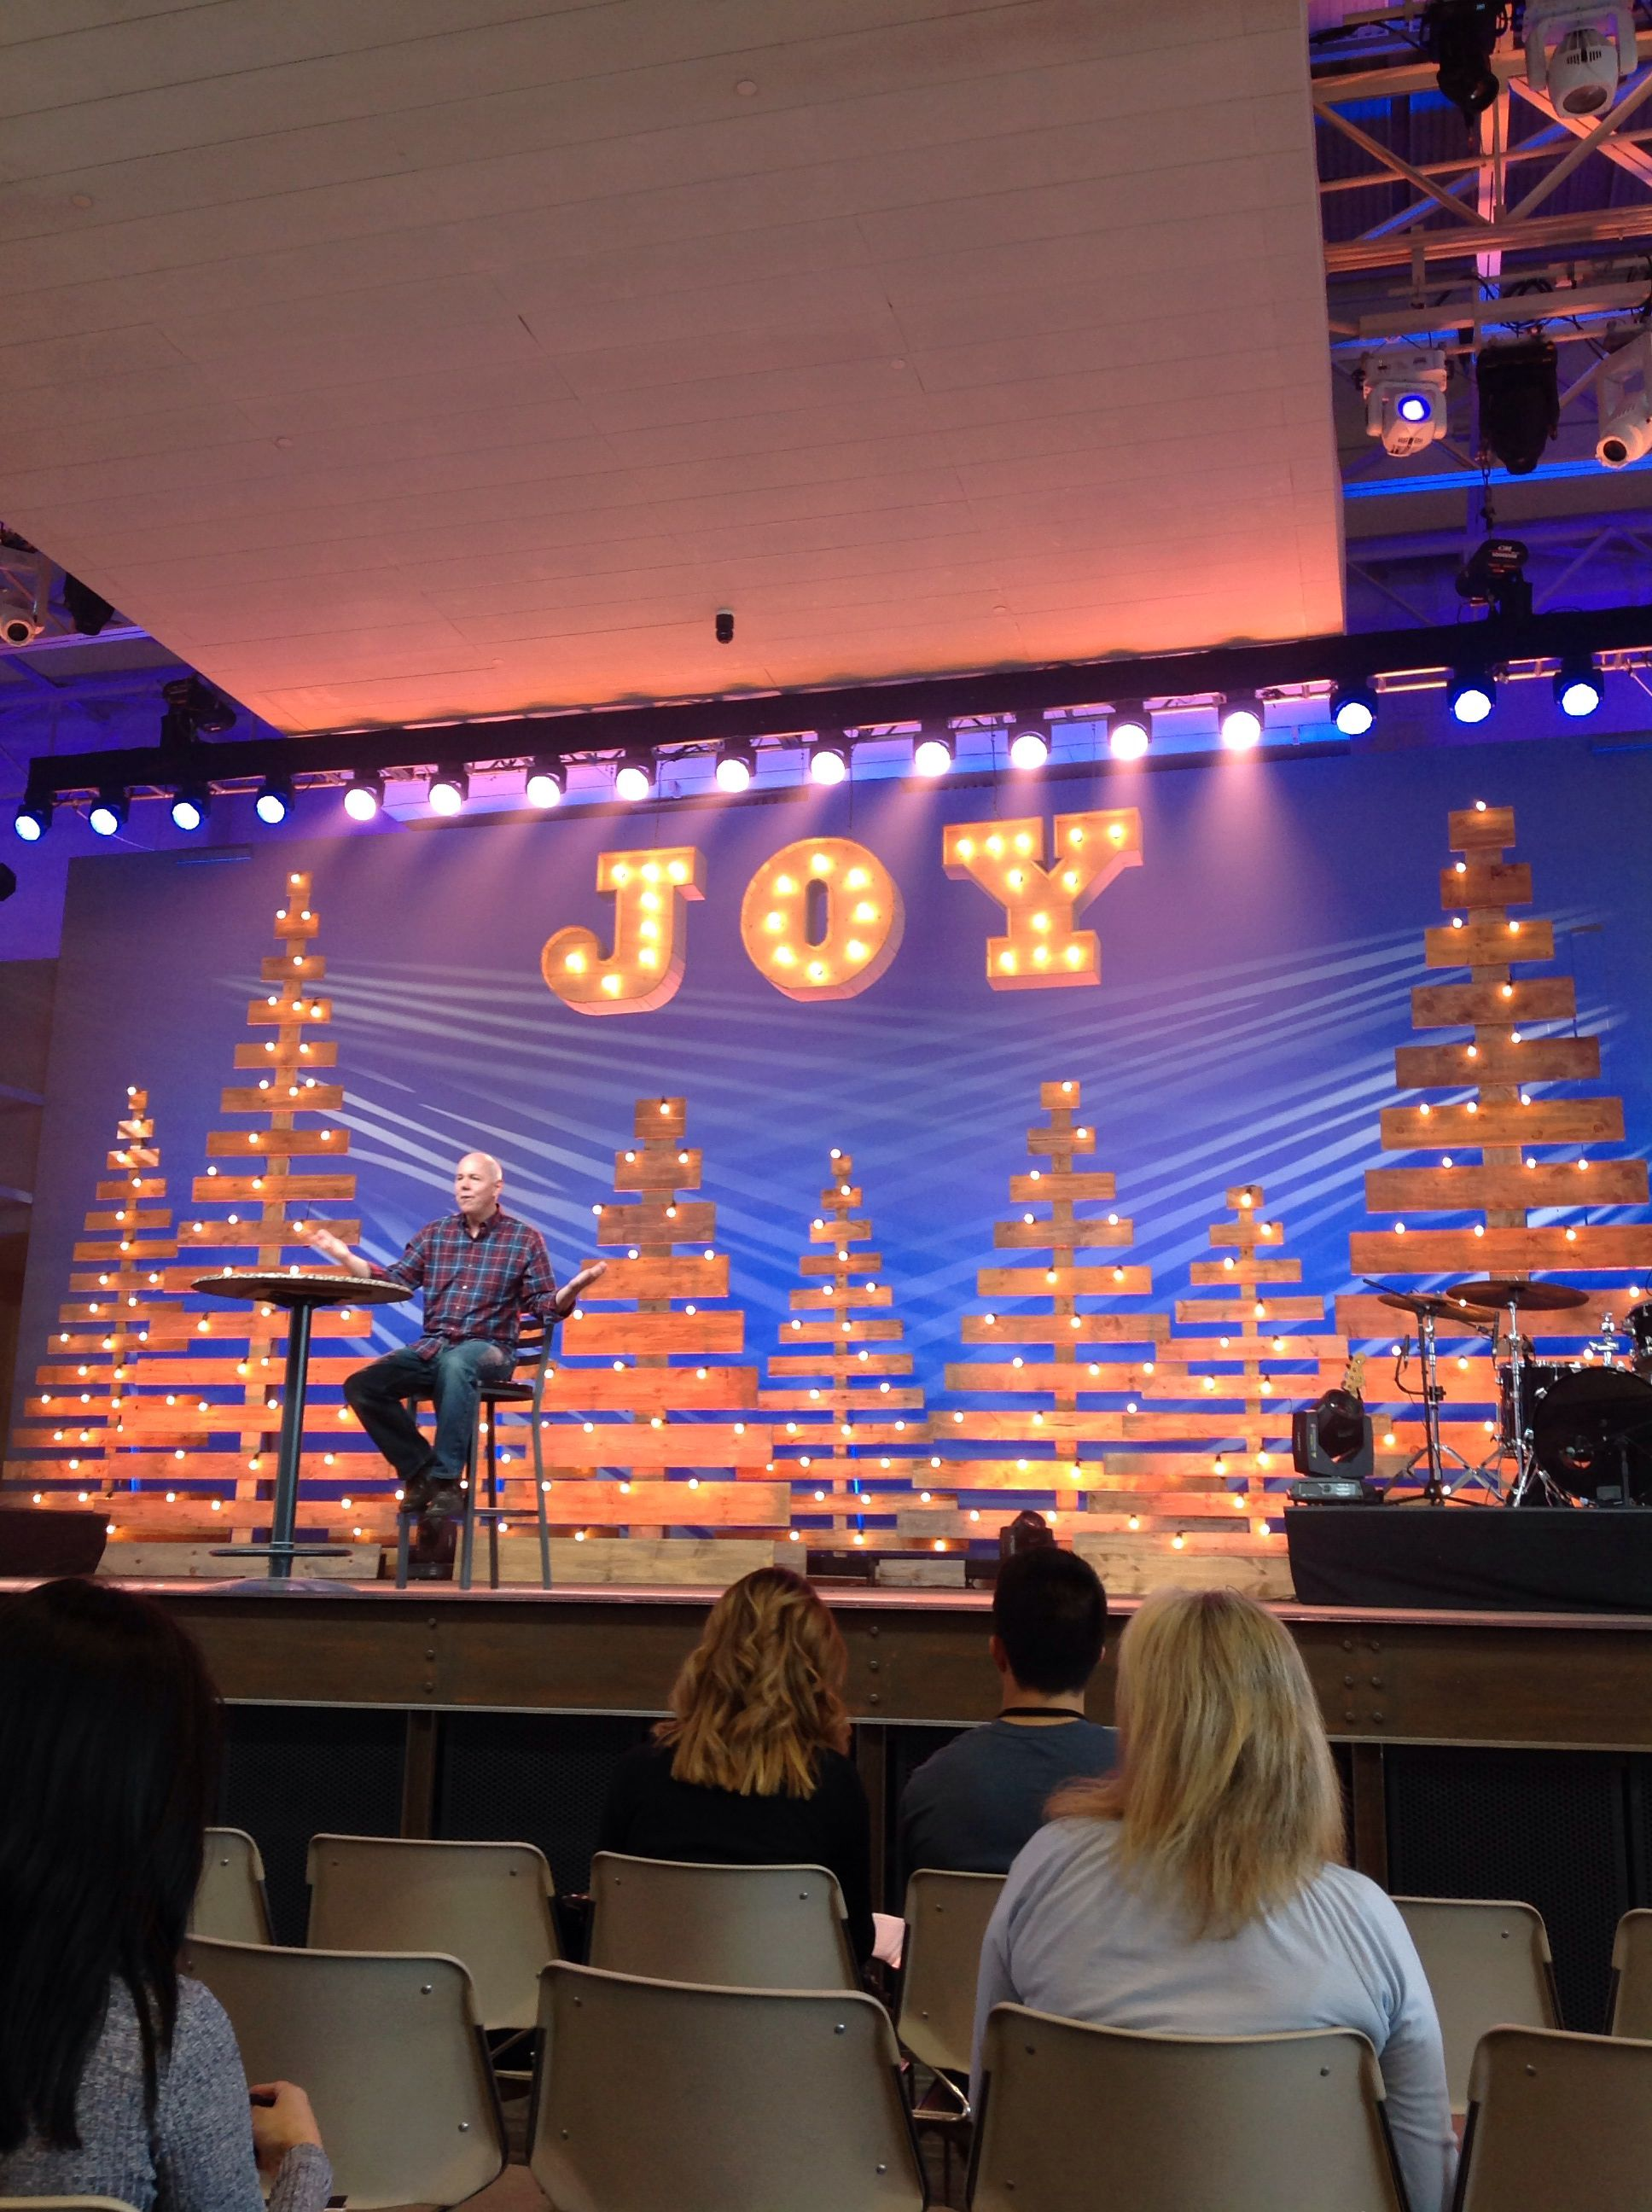 Pastor Tom Halladay teaching us about Joy